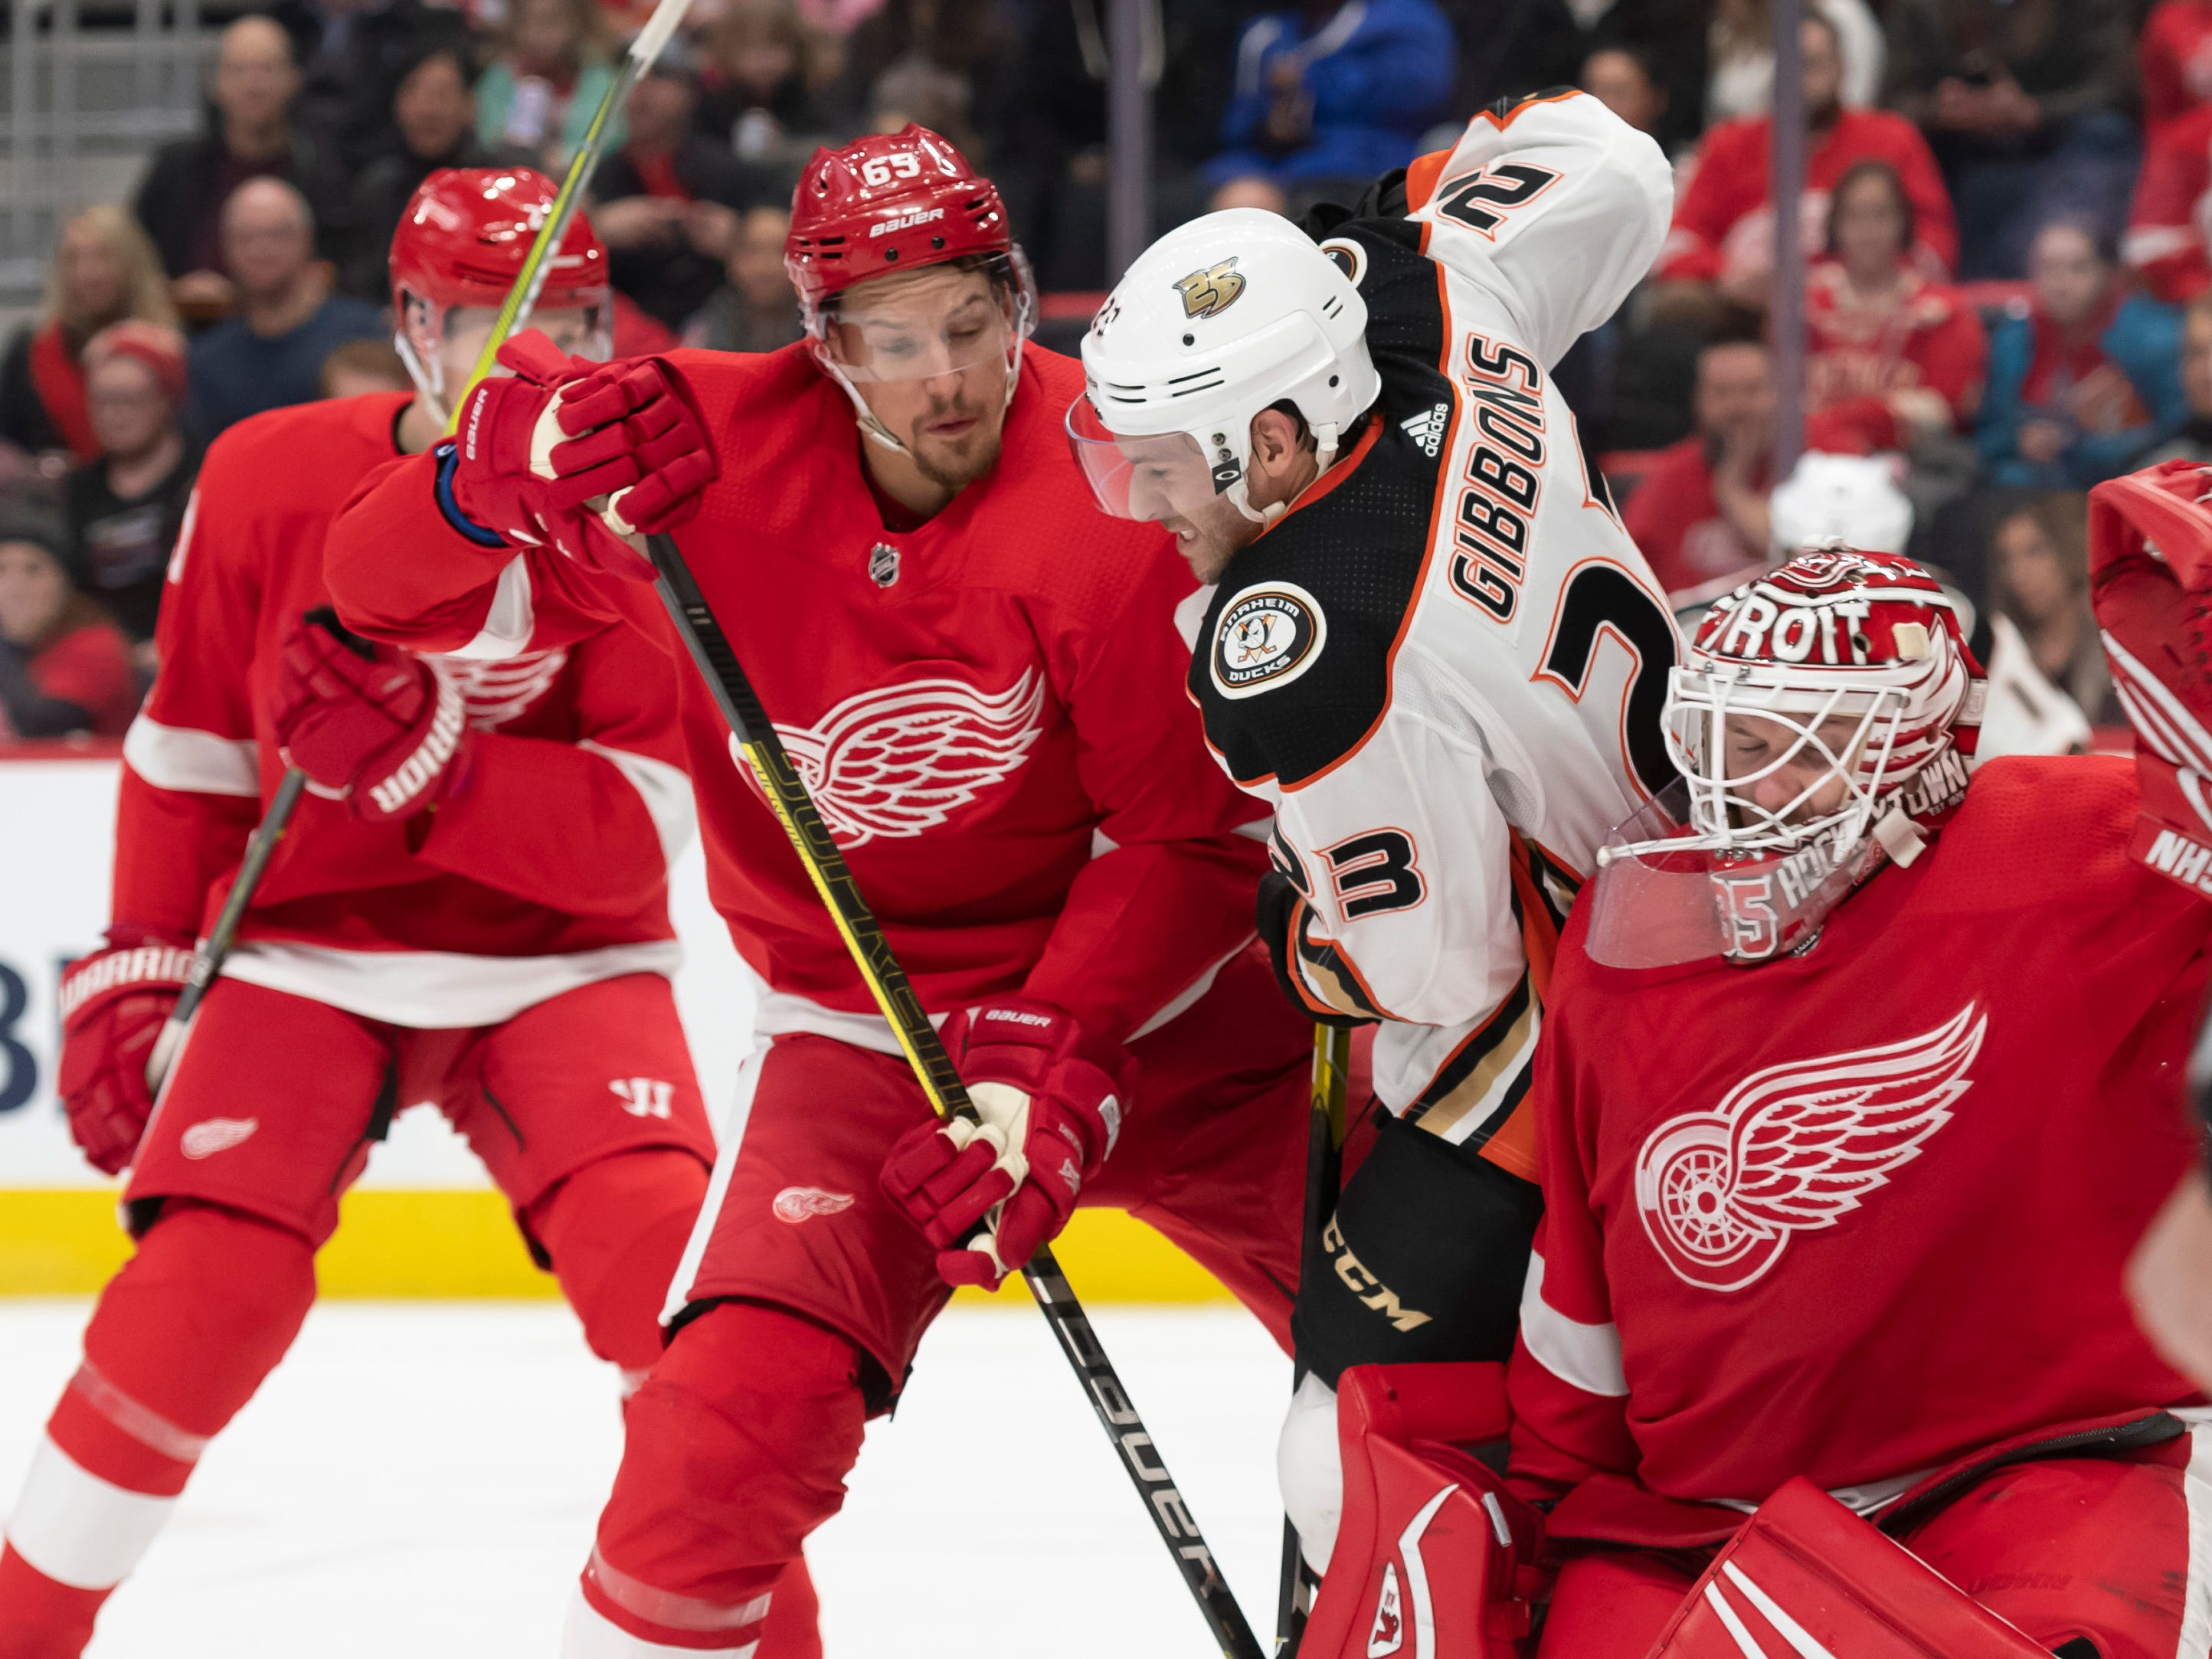 Detroit defenseman Danny DeKeyser, left, and goaltender Jimmy Howard battle for the puck with Anaheim center Brian Gibbons in the second period.